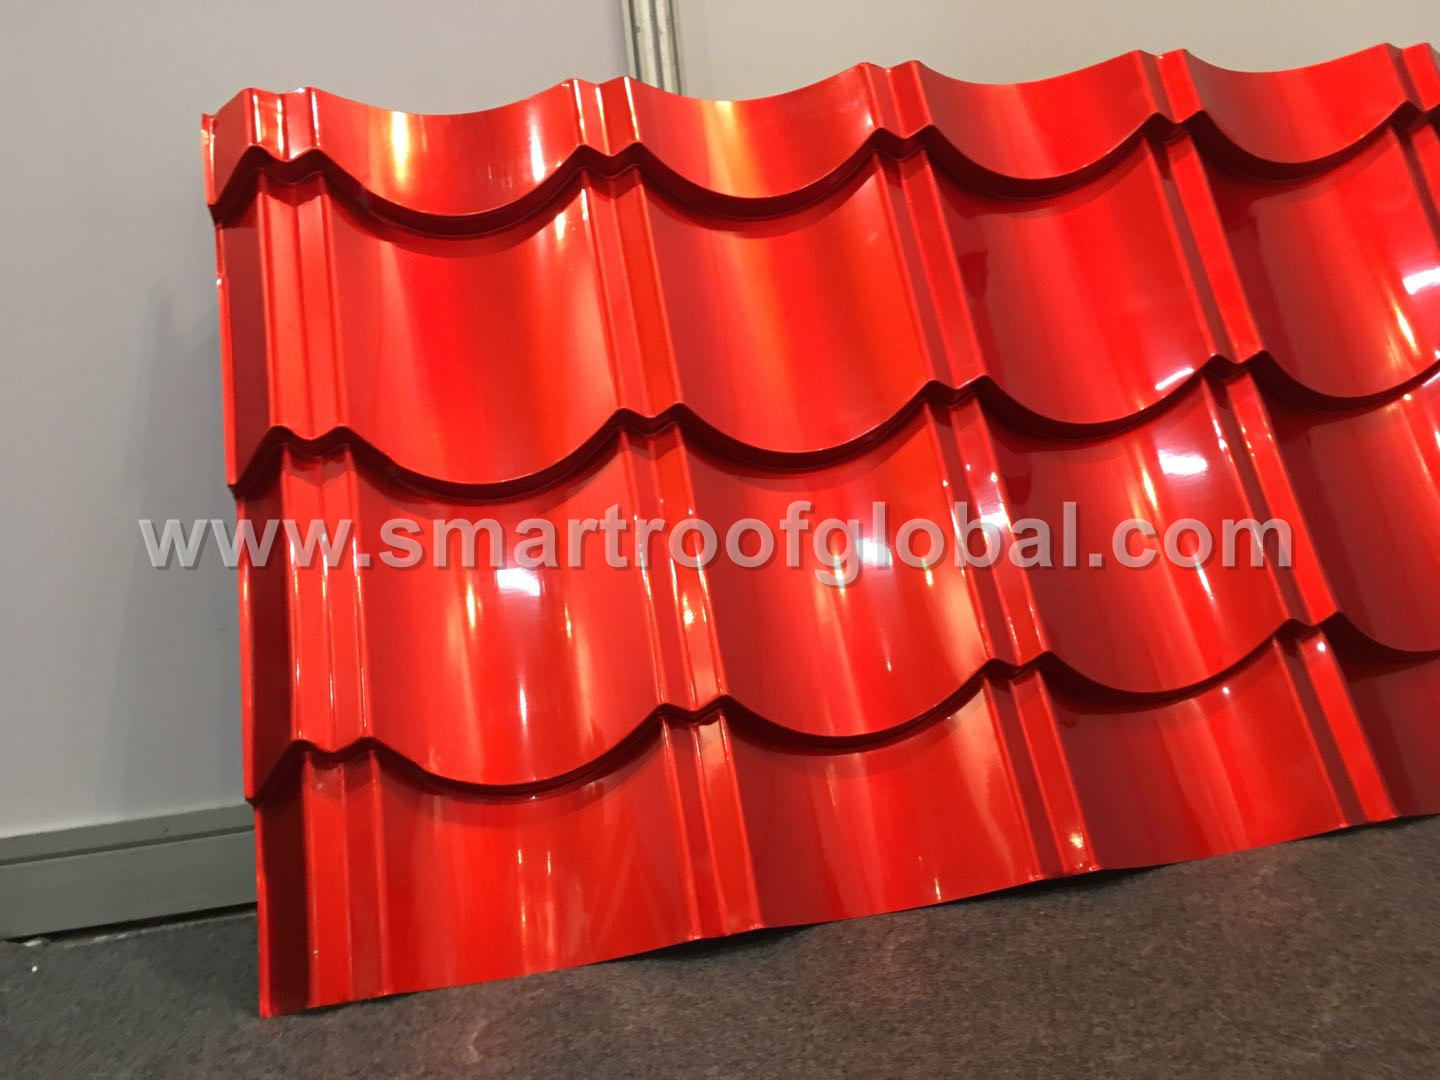 Galvanized Metal Roofing Featured Image